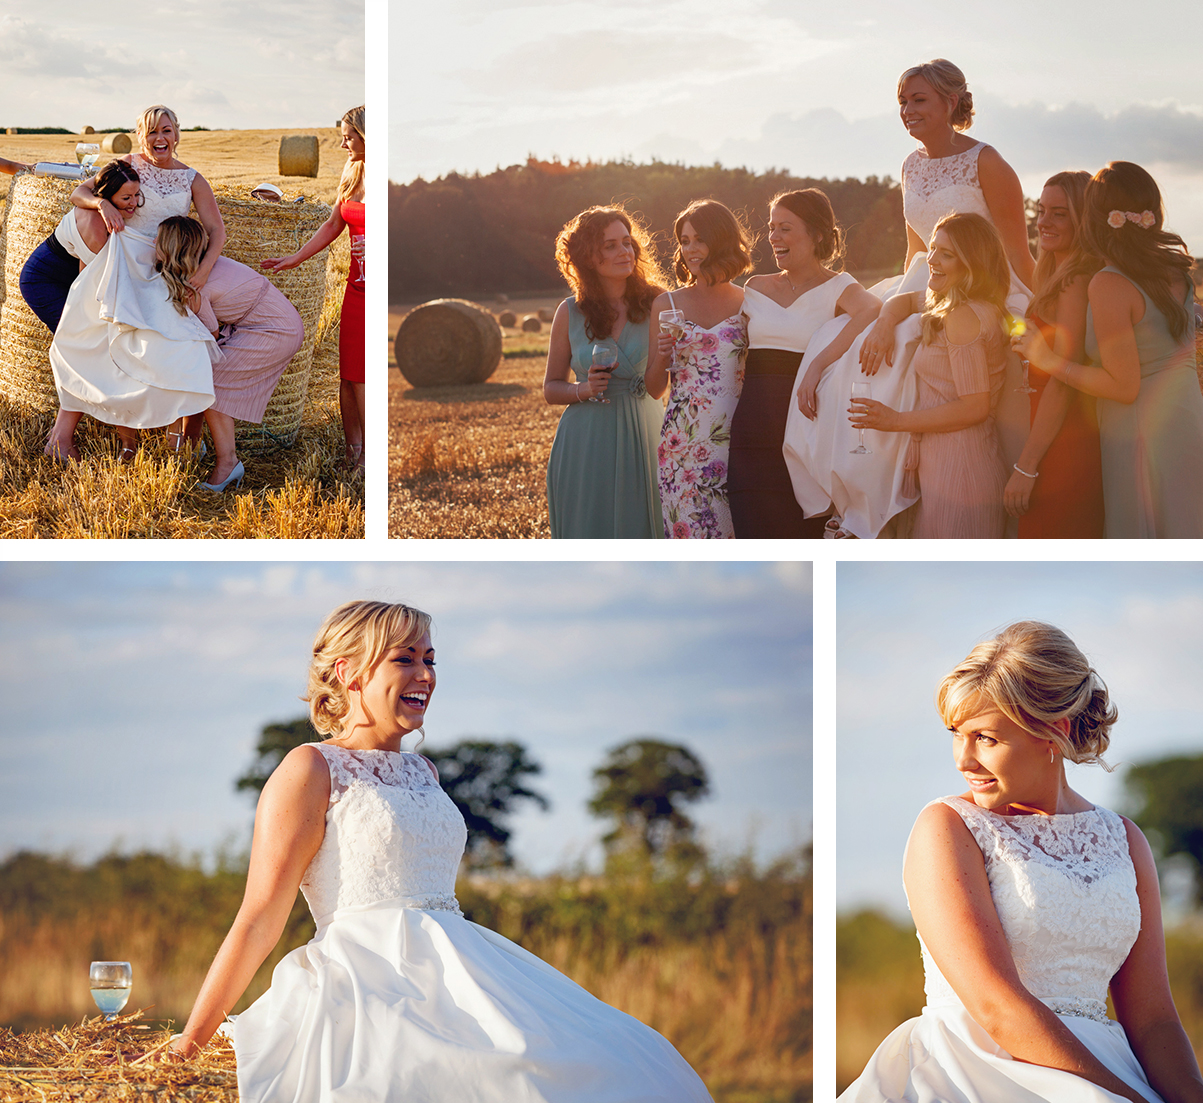 sally_crane_wedding_photography_warwickshire_6.jpg